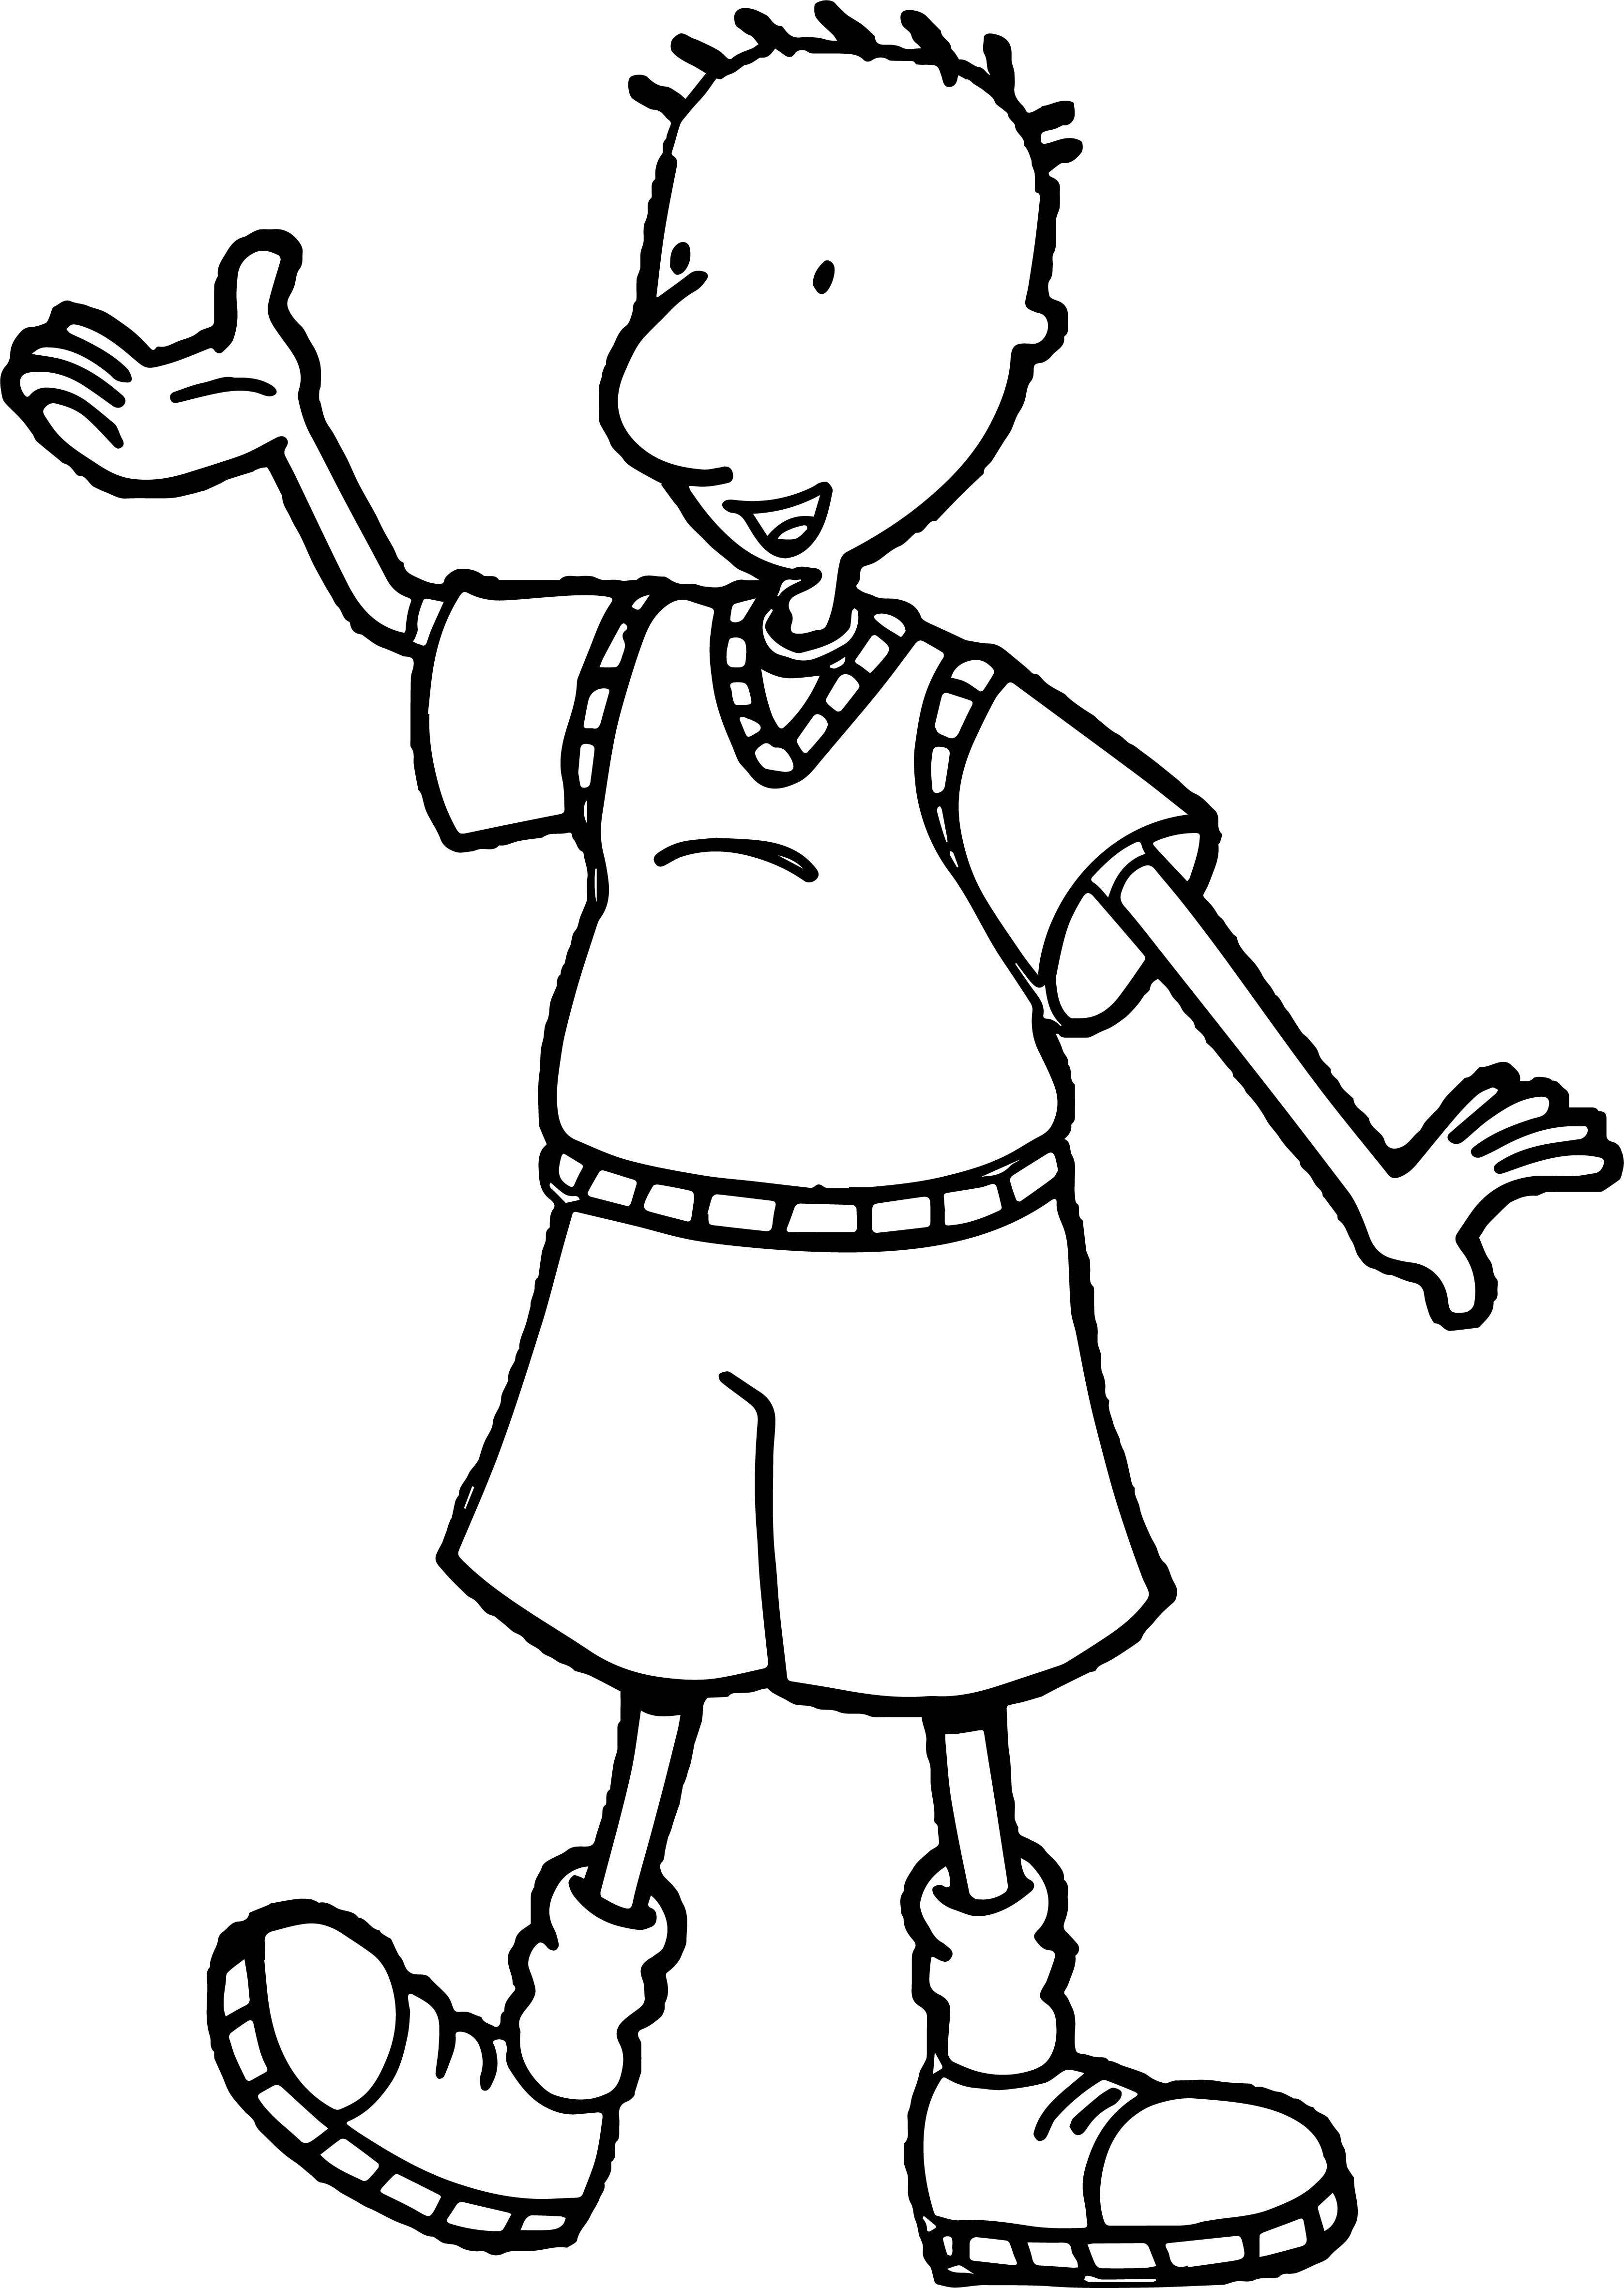 Doug Funnie This Coloring Page